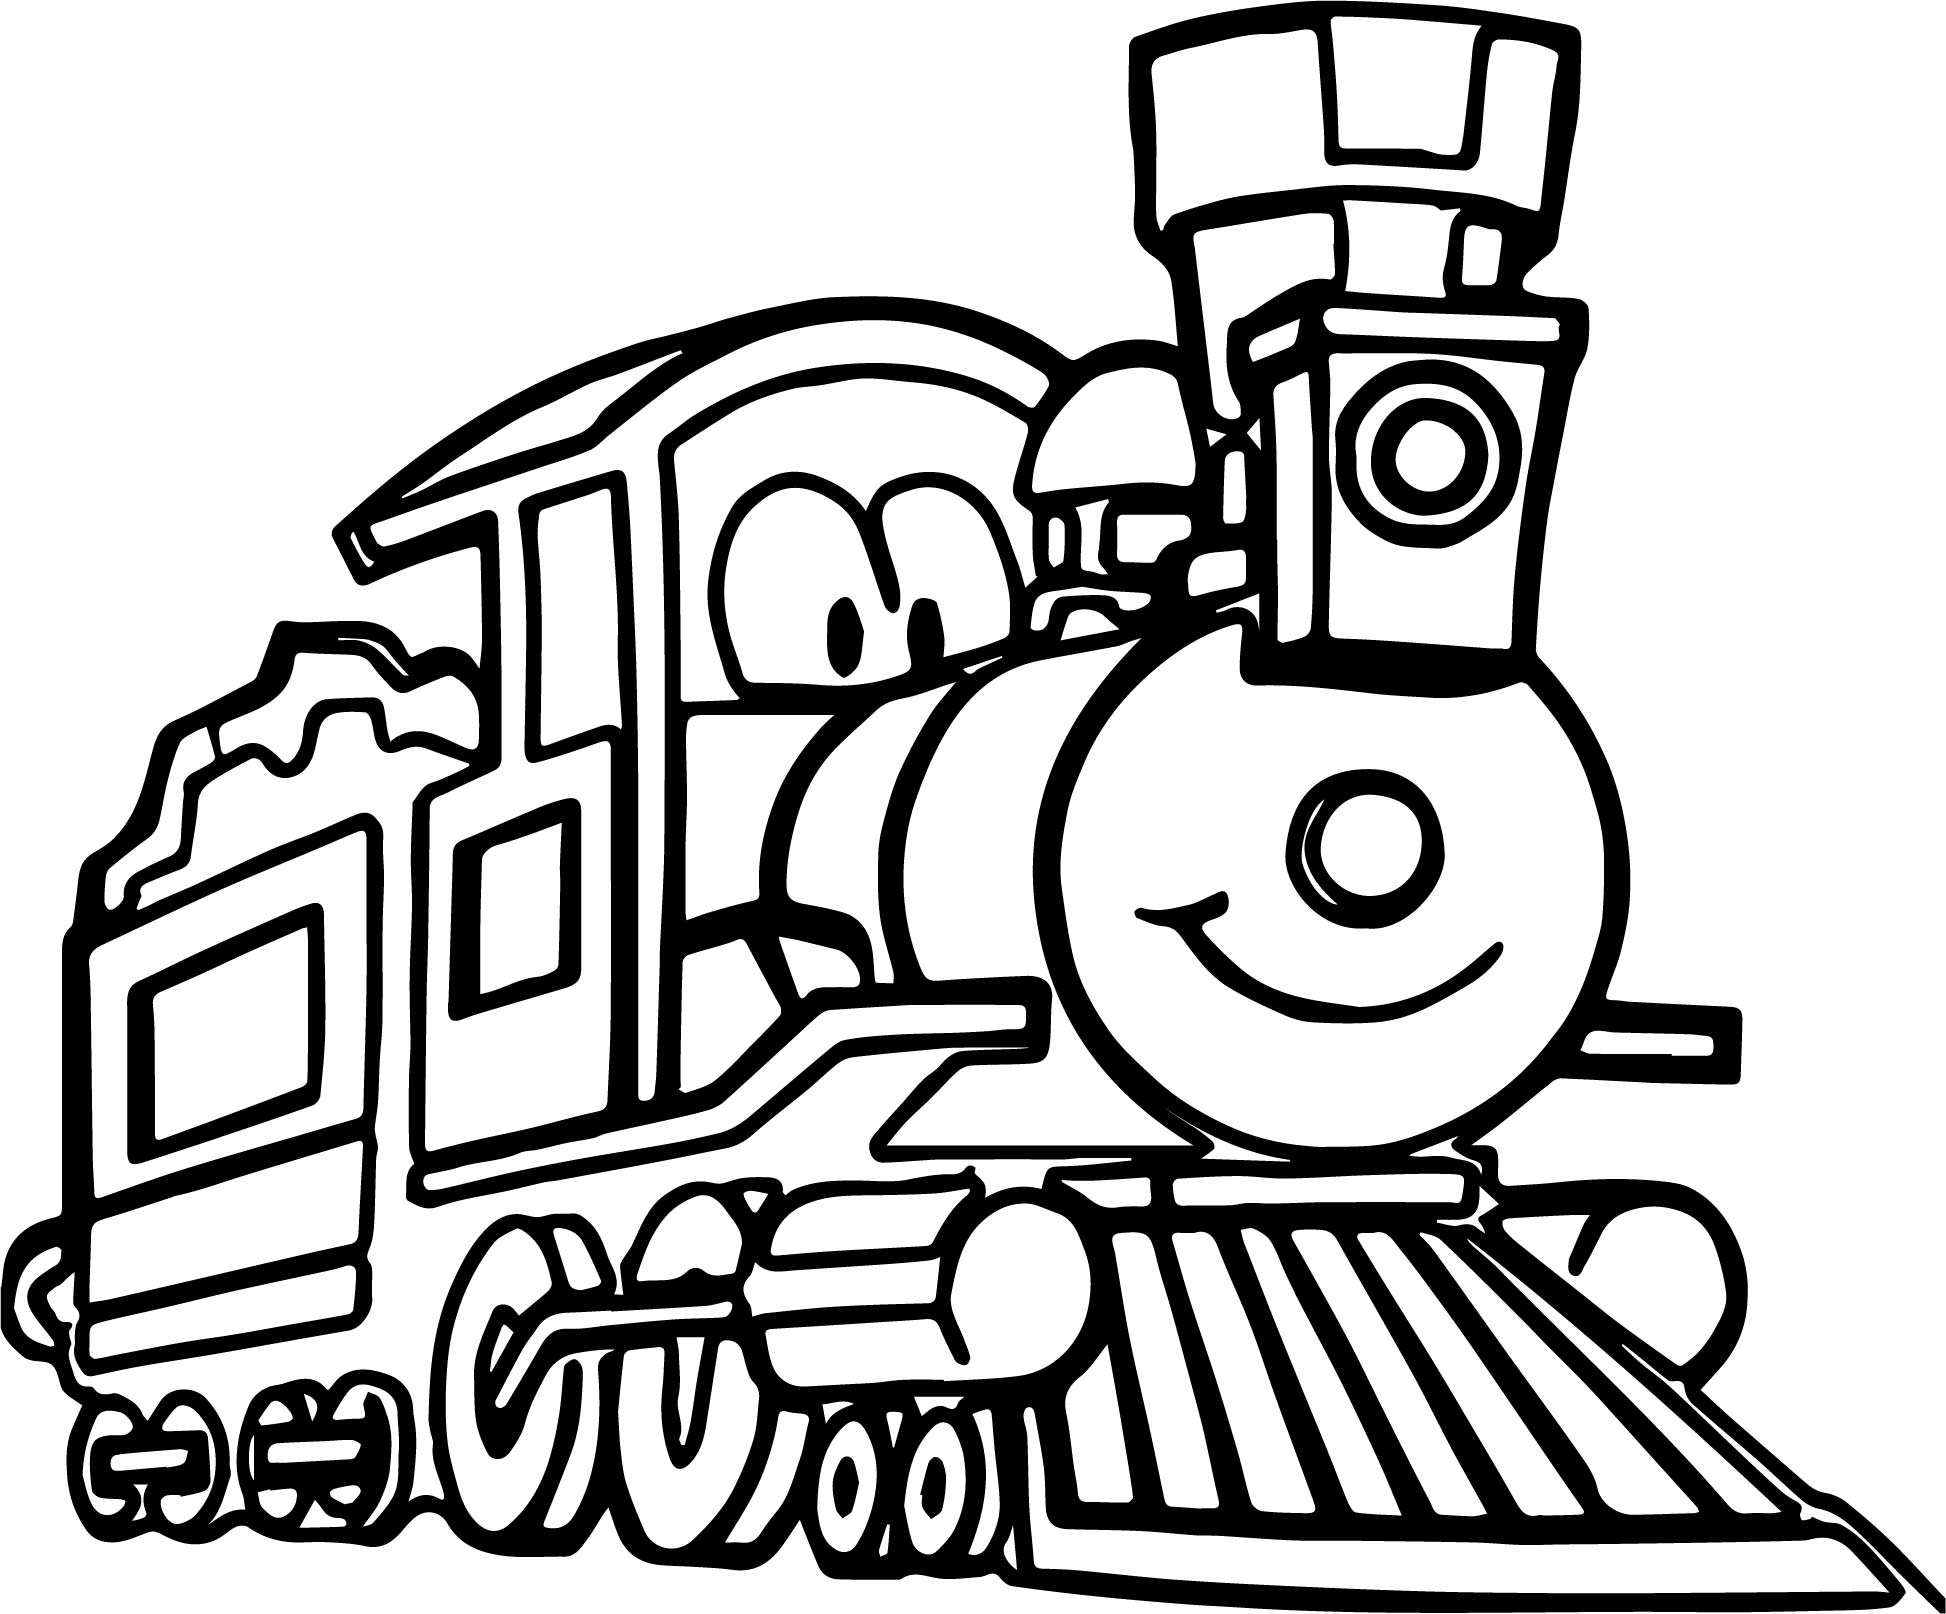 coloring pages trains free printable train coloring pages for kids trains pages coloring